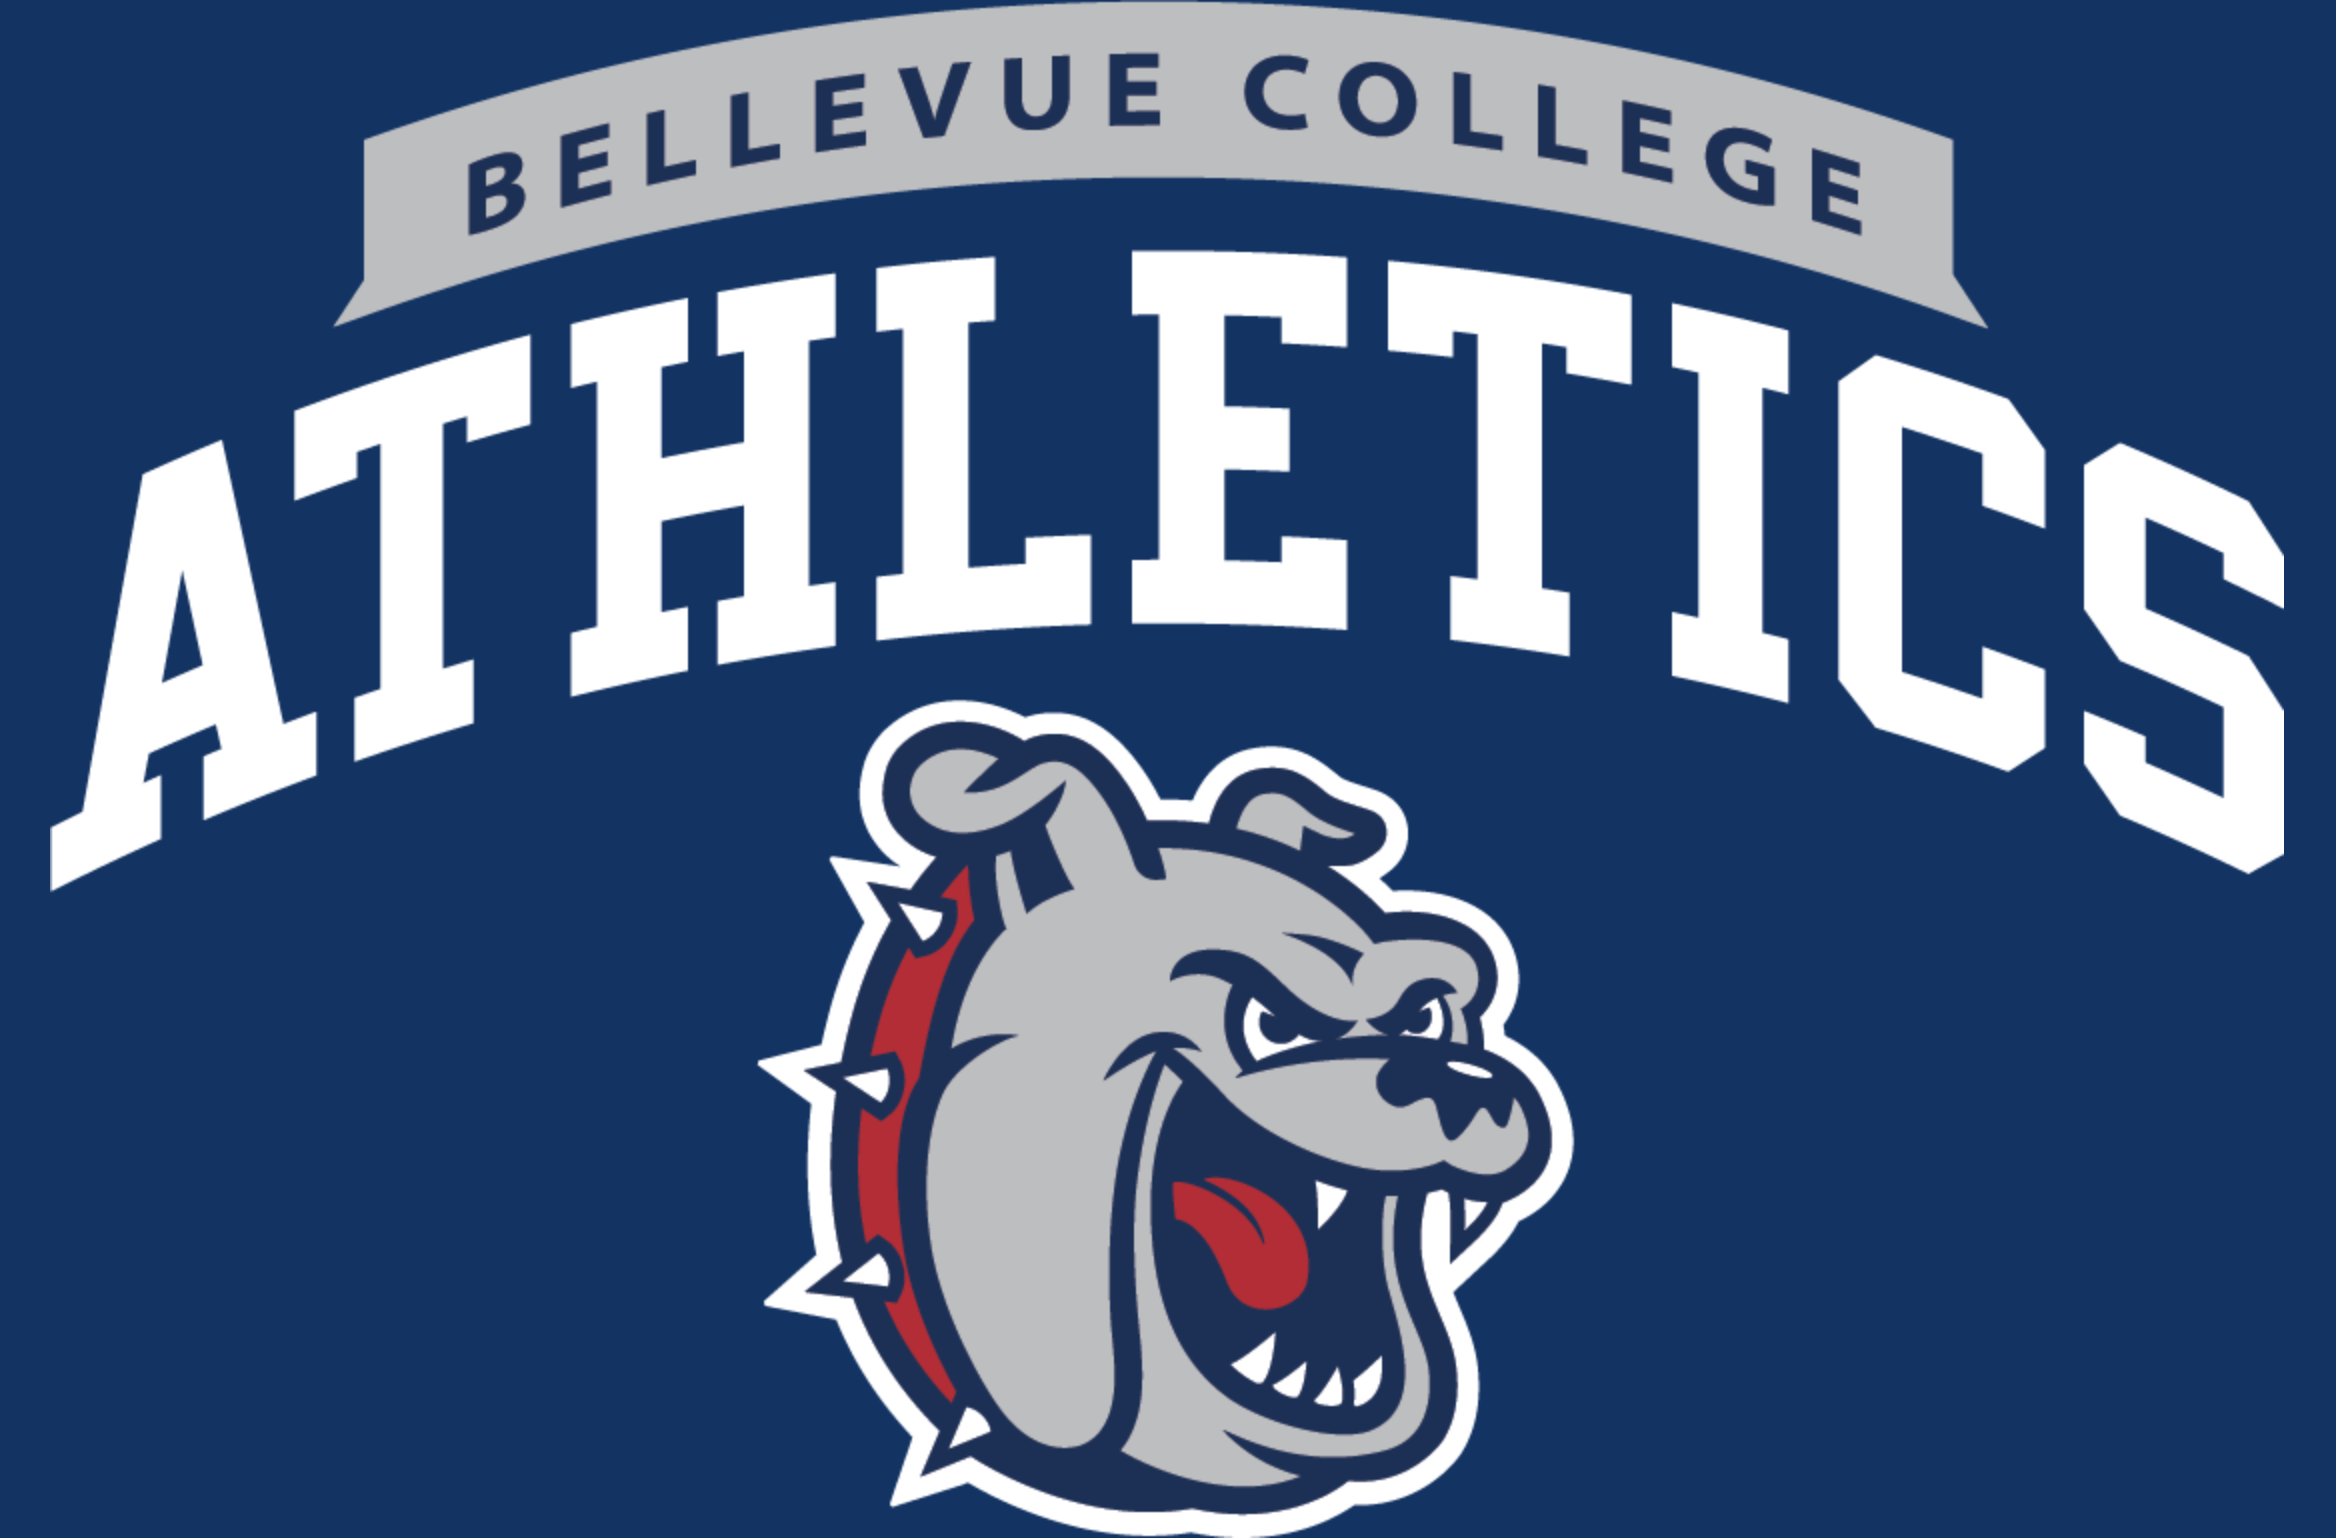 BC Bulldogs logo with Brutus